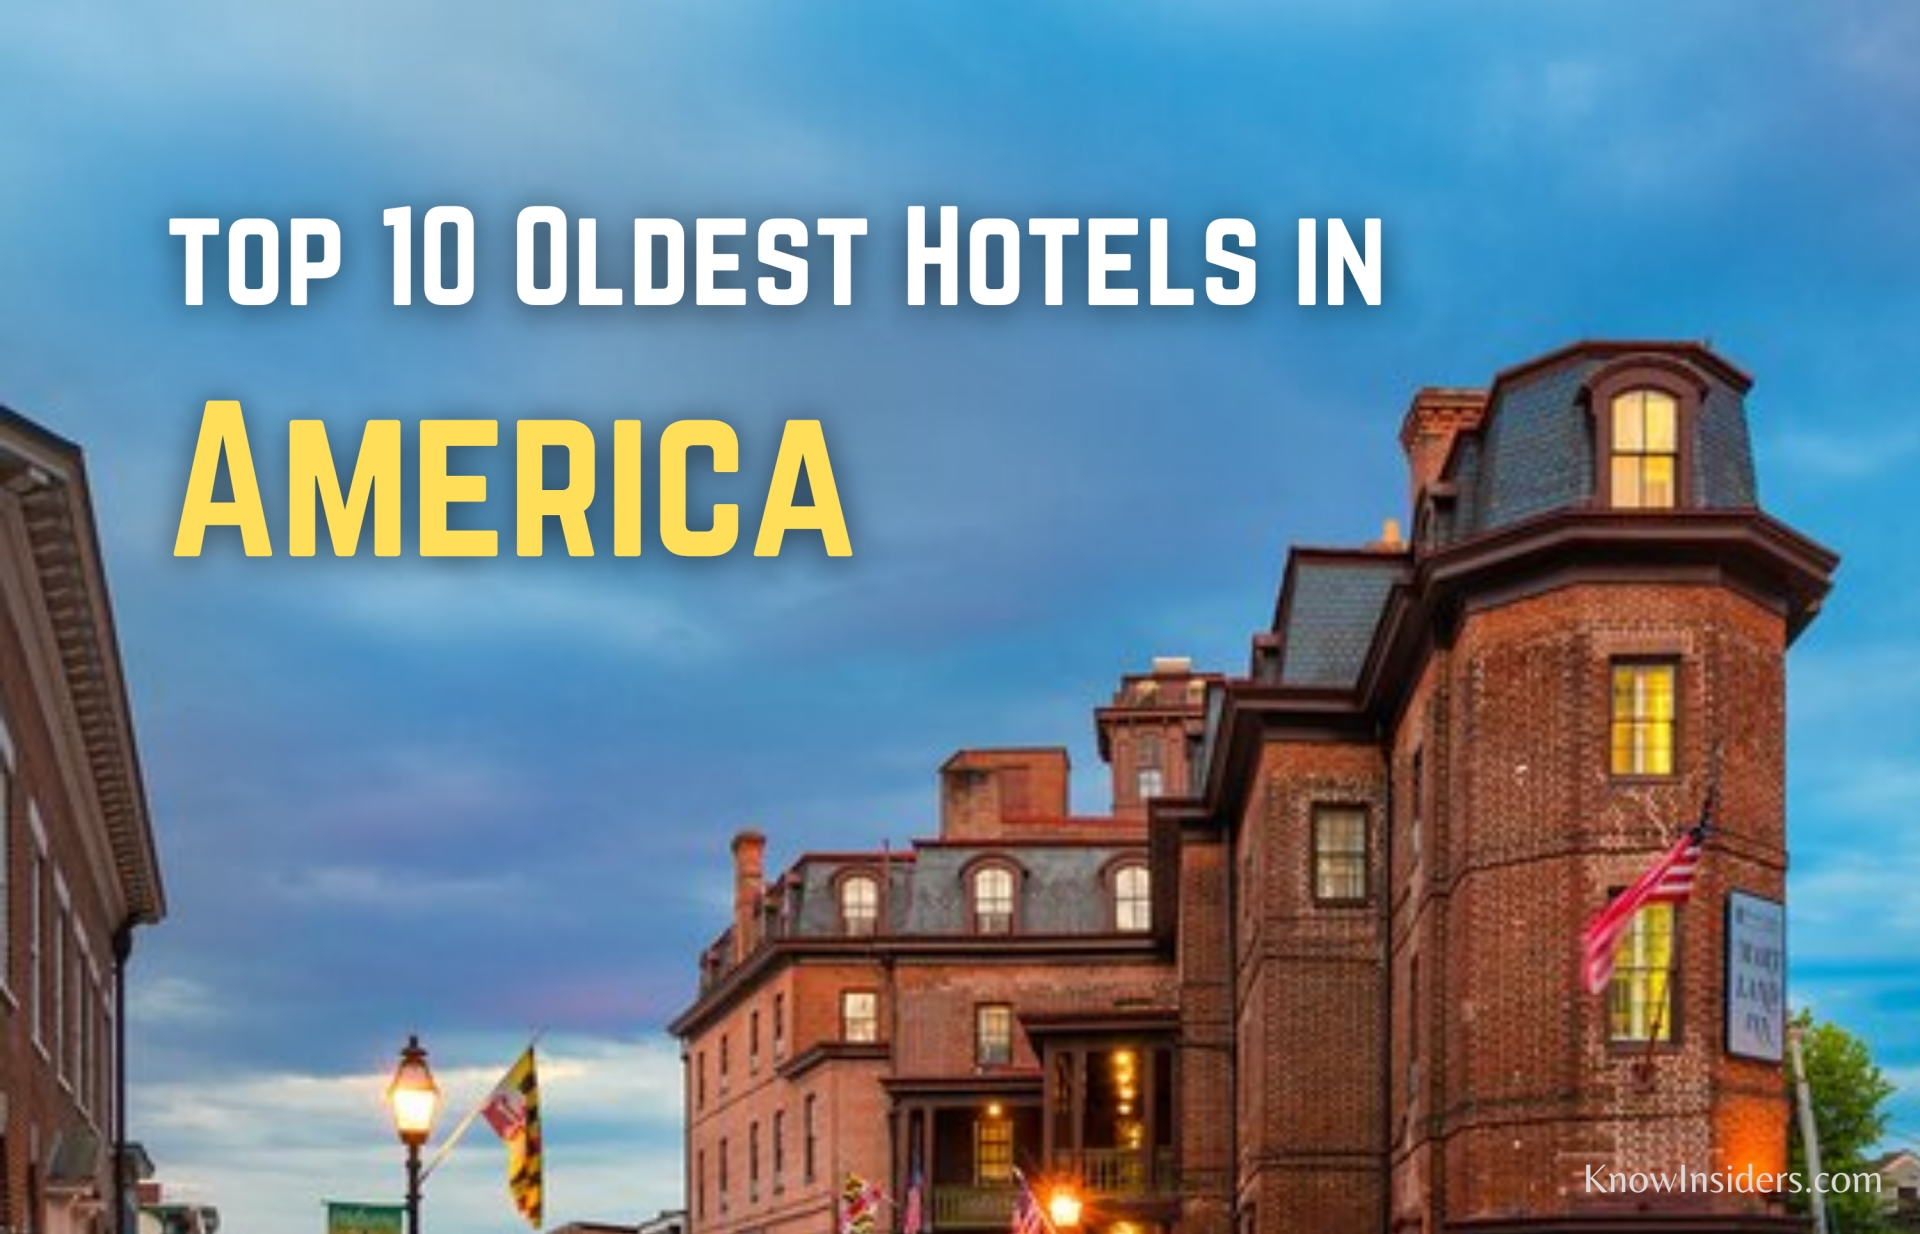 Top 10 Oldest Hotels in the US - The First Hotels